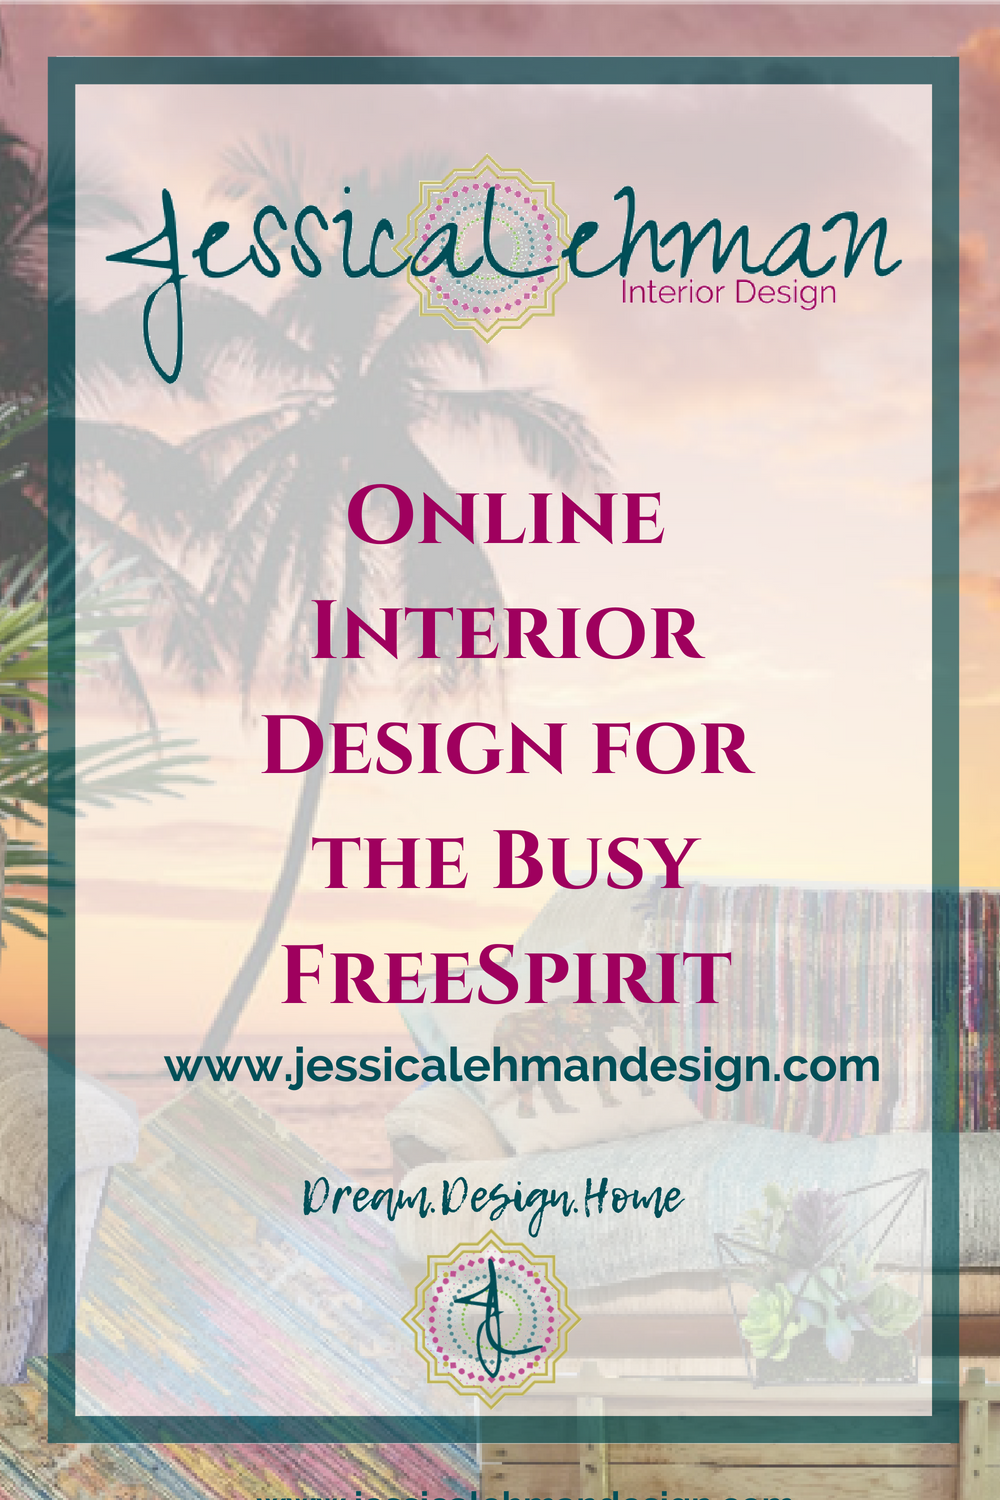 Online interior design made easy let me do all the hard work so you can concentrate on making memoires